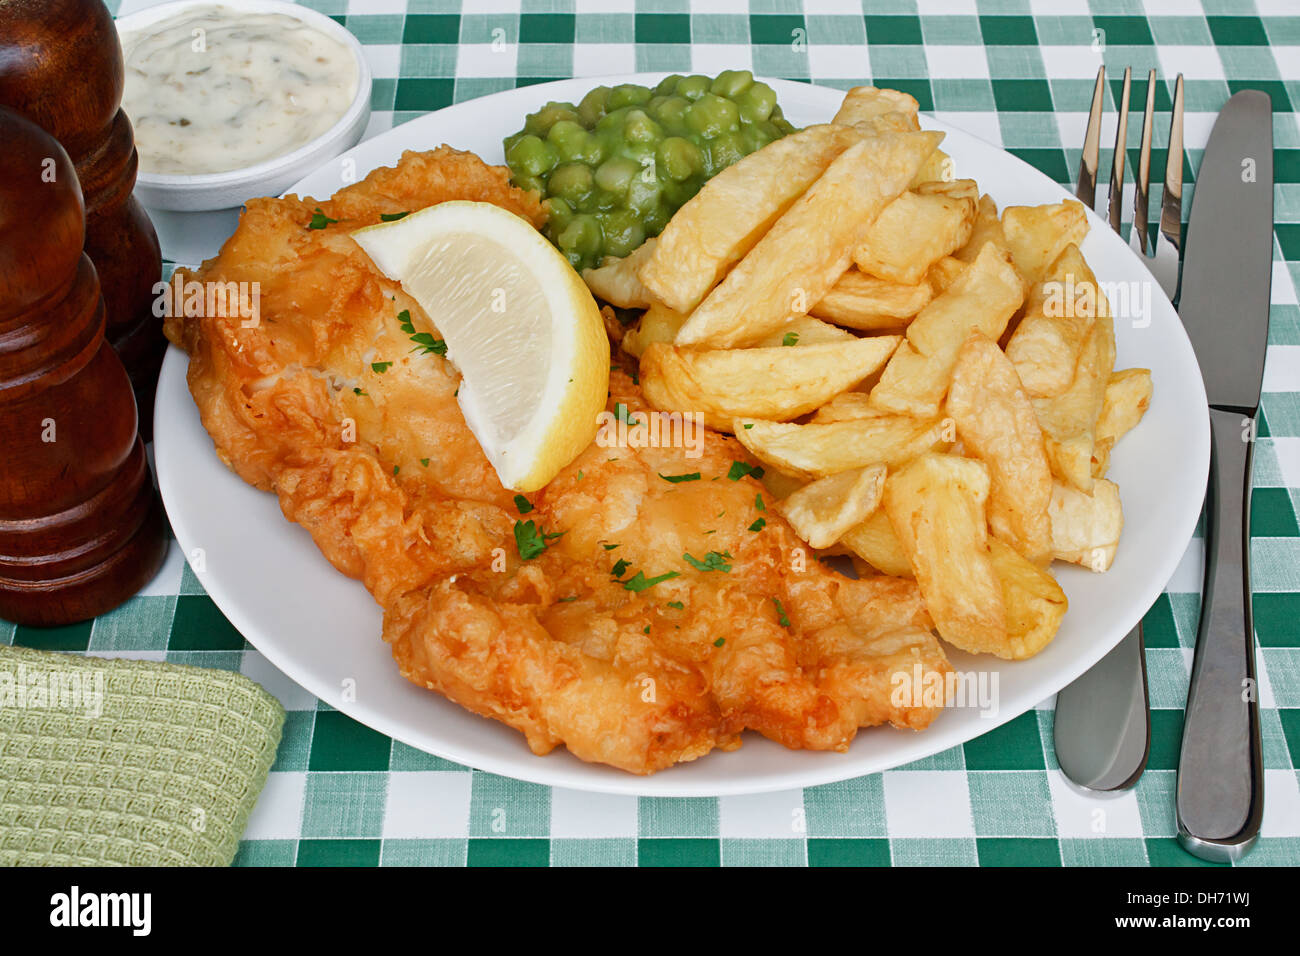 Plate of fish and chips with mushy peas and a slice of lemon on a diner table. A traditional British Seaside Dish - Stock Image